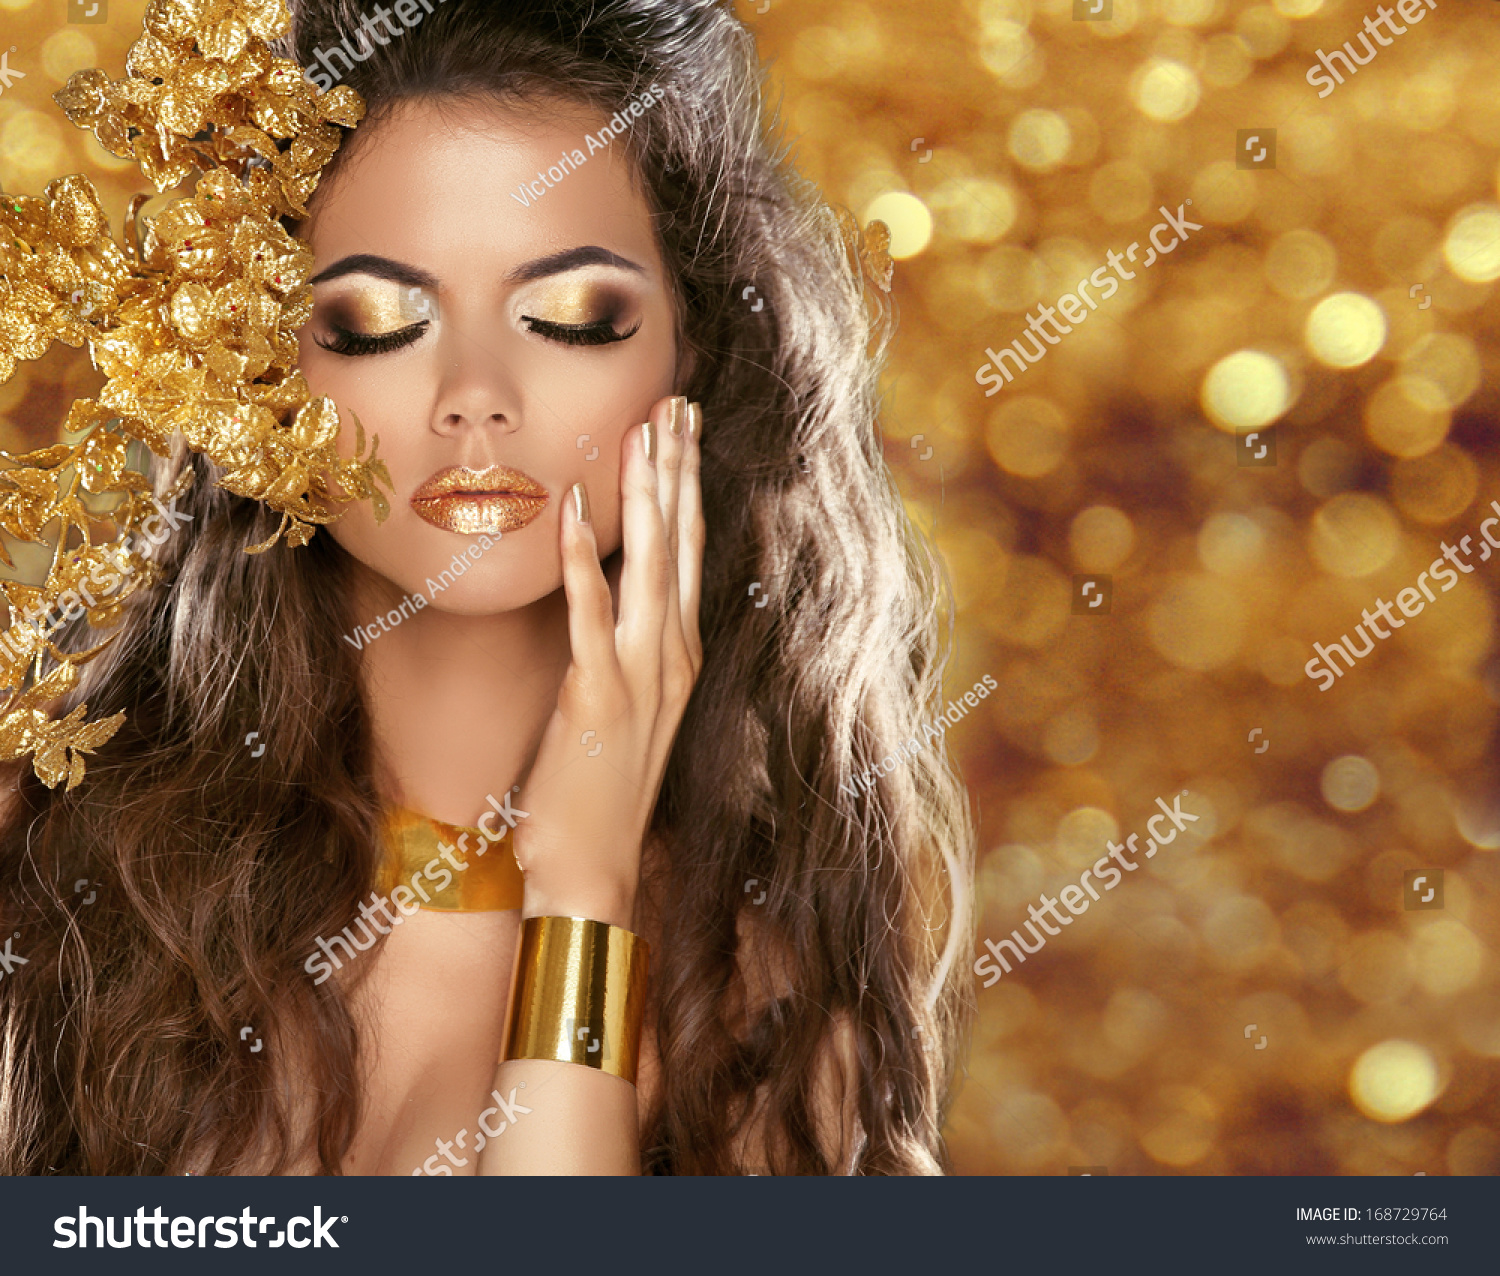 Glitz Glam Blue Diamontrigue Jewelry: Fashion Beauty Girl Portrait Isolated On Golden Christmas